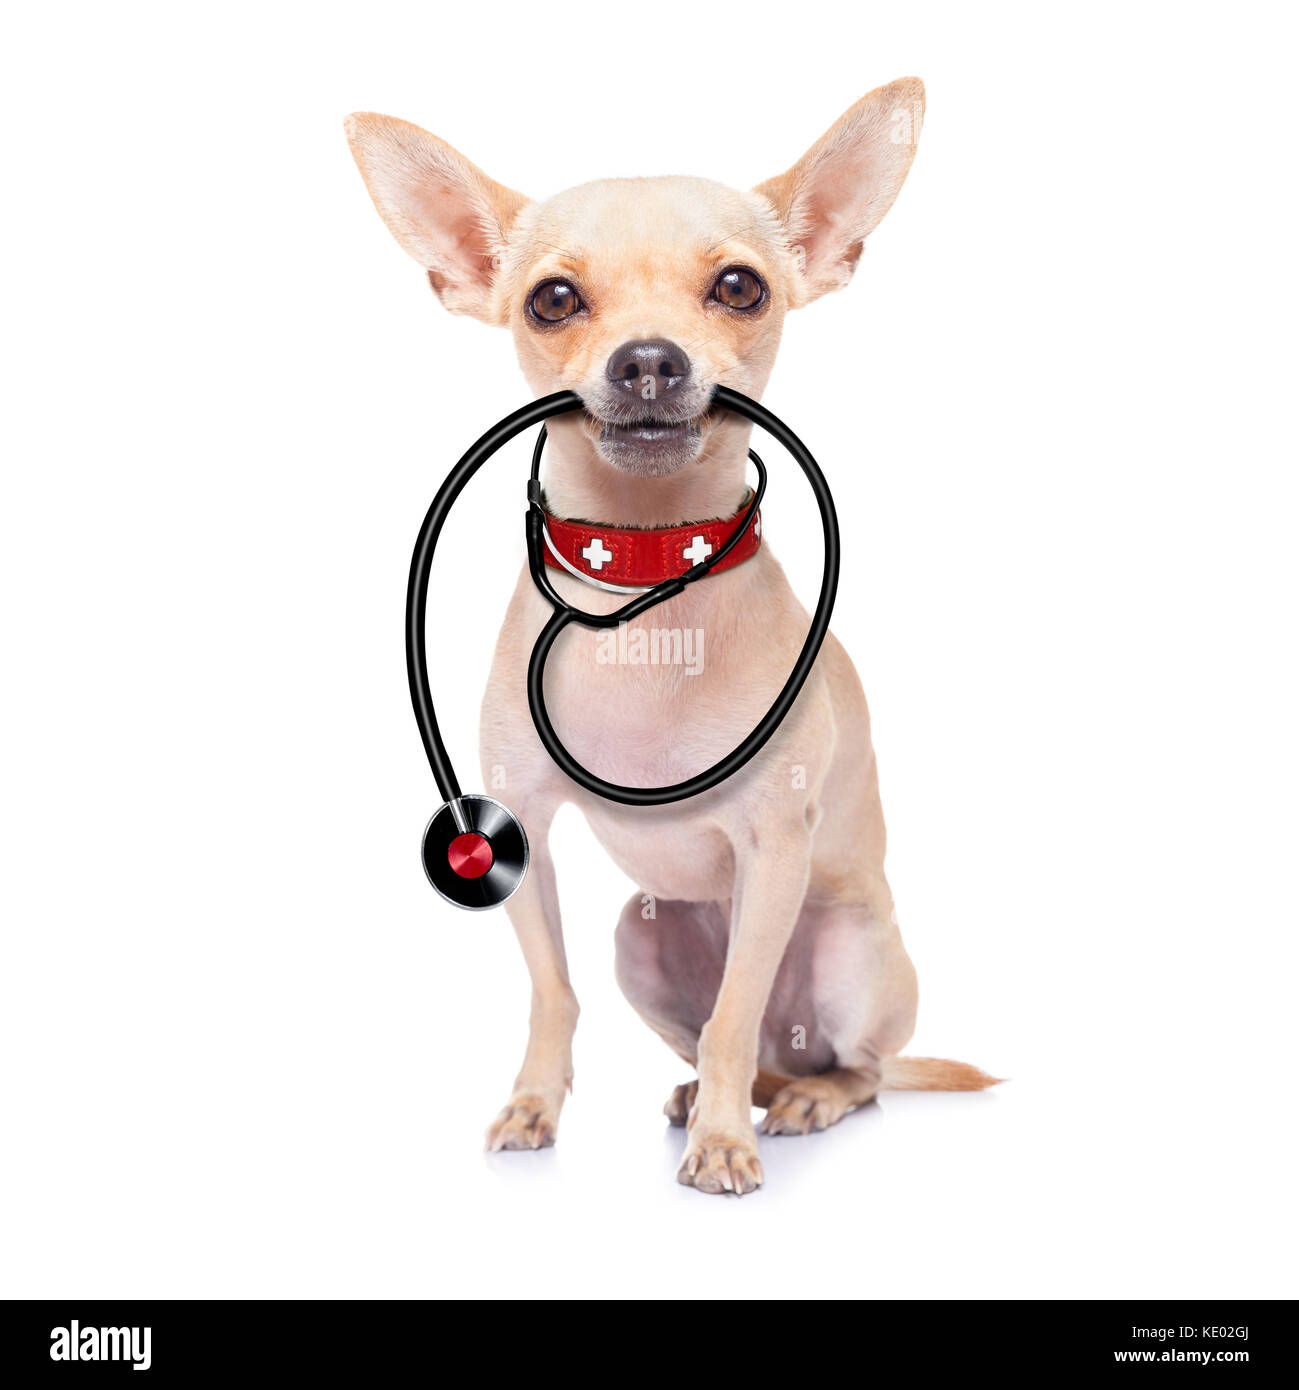 chihuahua dog as a medical veterinary doctor with stethoscope,isolated on white background - Stock Image